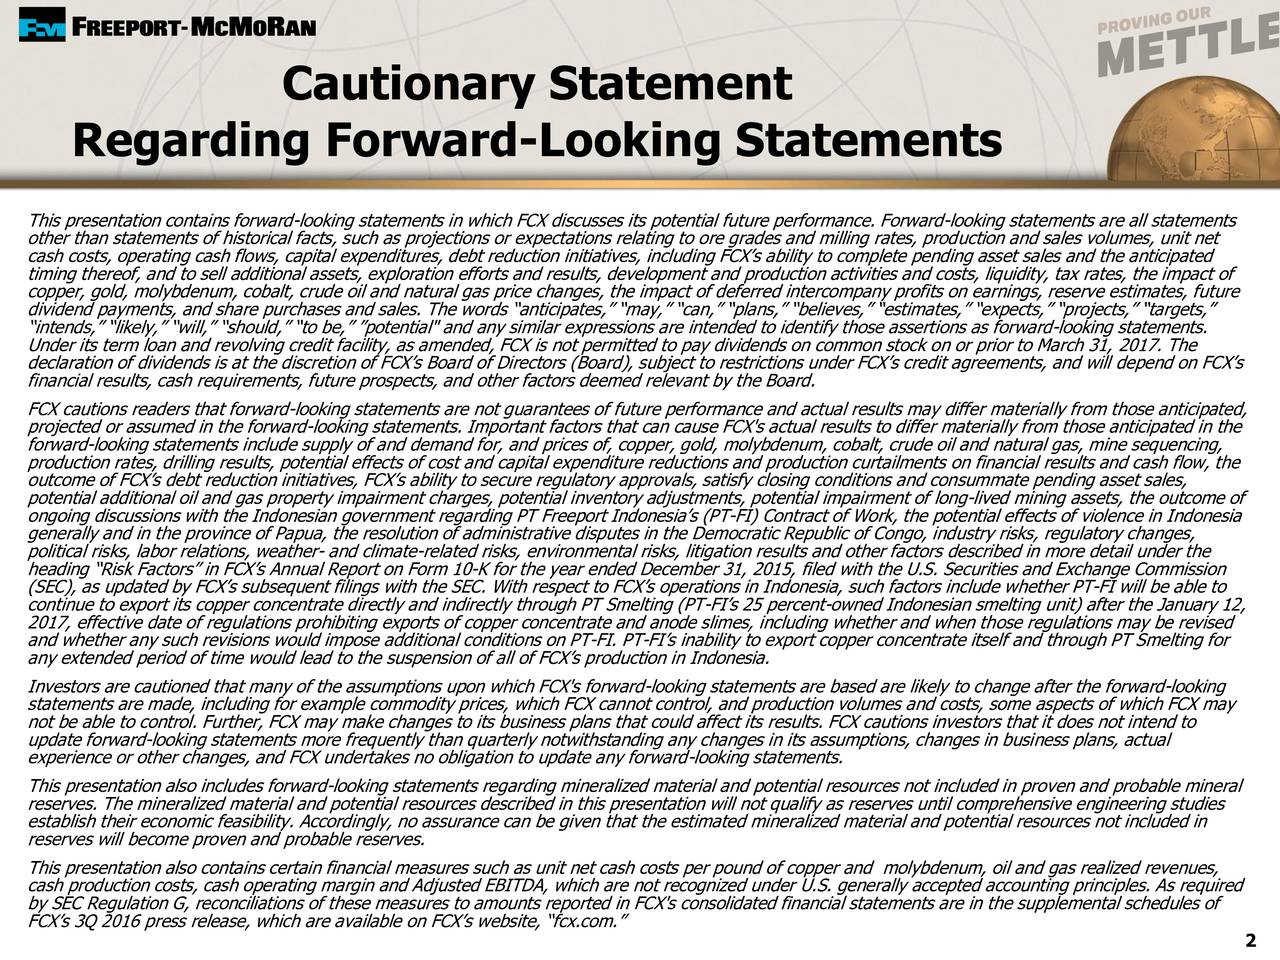 """Regarding Forward-Looking Statements This presentation contains forward-looking statements in which FCX discusses its potential future performance. Forward-looking statements are all statements other than statements of historical facts, such as projections or expectations relating to ore grades and milling rates, production and sales volumes, unit net cash costs, operating cash flows, capital expenditures, debt reduction initiatives, including FCXs ability to complete pending asset sales and the anticipated timing thereof, and to sell additional assets, exploration efforts and results, development and production activities and costs, liquidity, tax rates, the impact of copper, gold, molybdenum, cobalt, crude oil and natural gas price changes, the impact of deferred intercompany profits on earnings, reserve estimates, future dividend payments, and share purchases and sales. The words anticipates, may, can, plans, believes, estimates, expects, projects, targets, intends, likely, will, should, to be, potential"""" and any similar expressions are intended to identify those assertions as forward-looking statements. Under its term loan and revolving credit facility, as amended, FCX is not permitted to pay dividends on common stock on or prior to March 31, 2017. The declaration of dividends is at the discretion of FCXs Board of Directors (Board), subject to restrictions under FCXs credit agreements, and will depend on FCXs financial results, cash requirements, future prospects, and other factors deemed relevant by the Board. FCX cautions readers that forward-looking statements are not guarantees of future performance and actual results may differ materially from those anticipated, projected or assumed in the forward-looking statements. Important factors that can cause FCX's actual results to differ materially from those anticipated in the forward-looking statements include supply of and demand for, and prices of, copper, gold, molybdenum, cobalt, crude oil and natural gas, mi"""